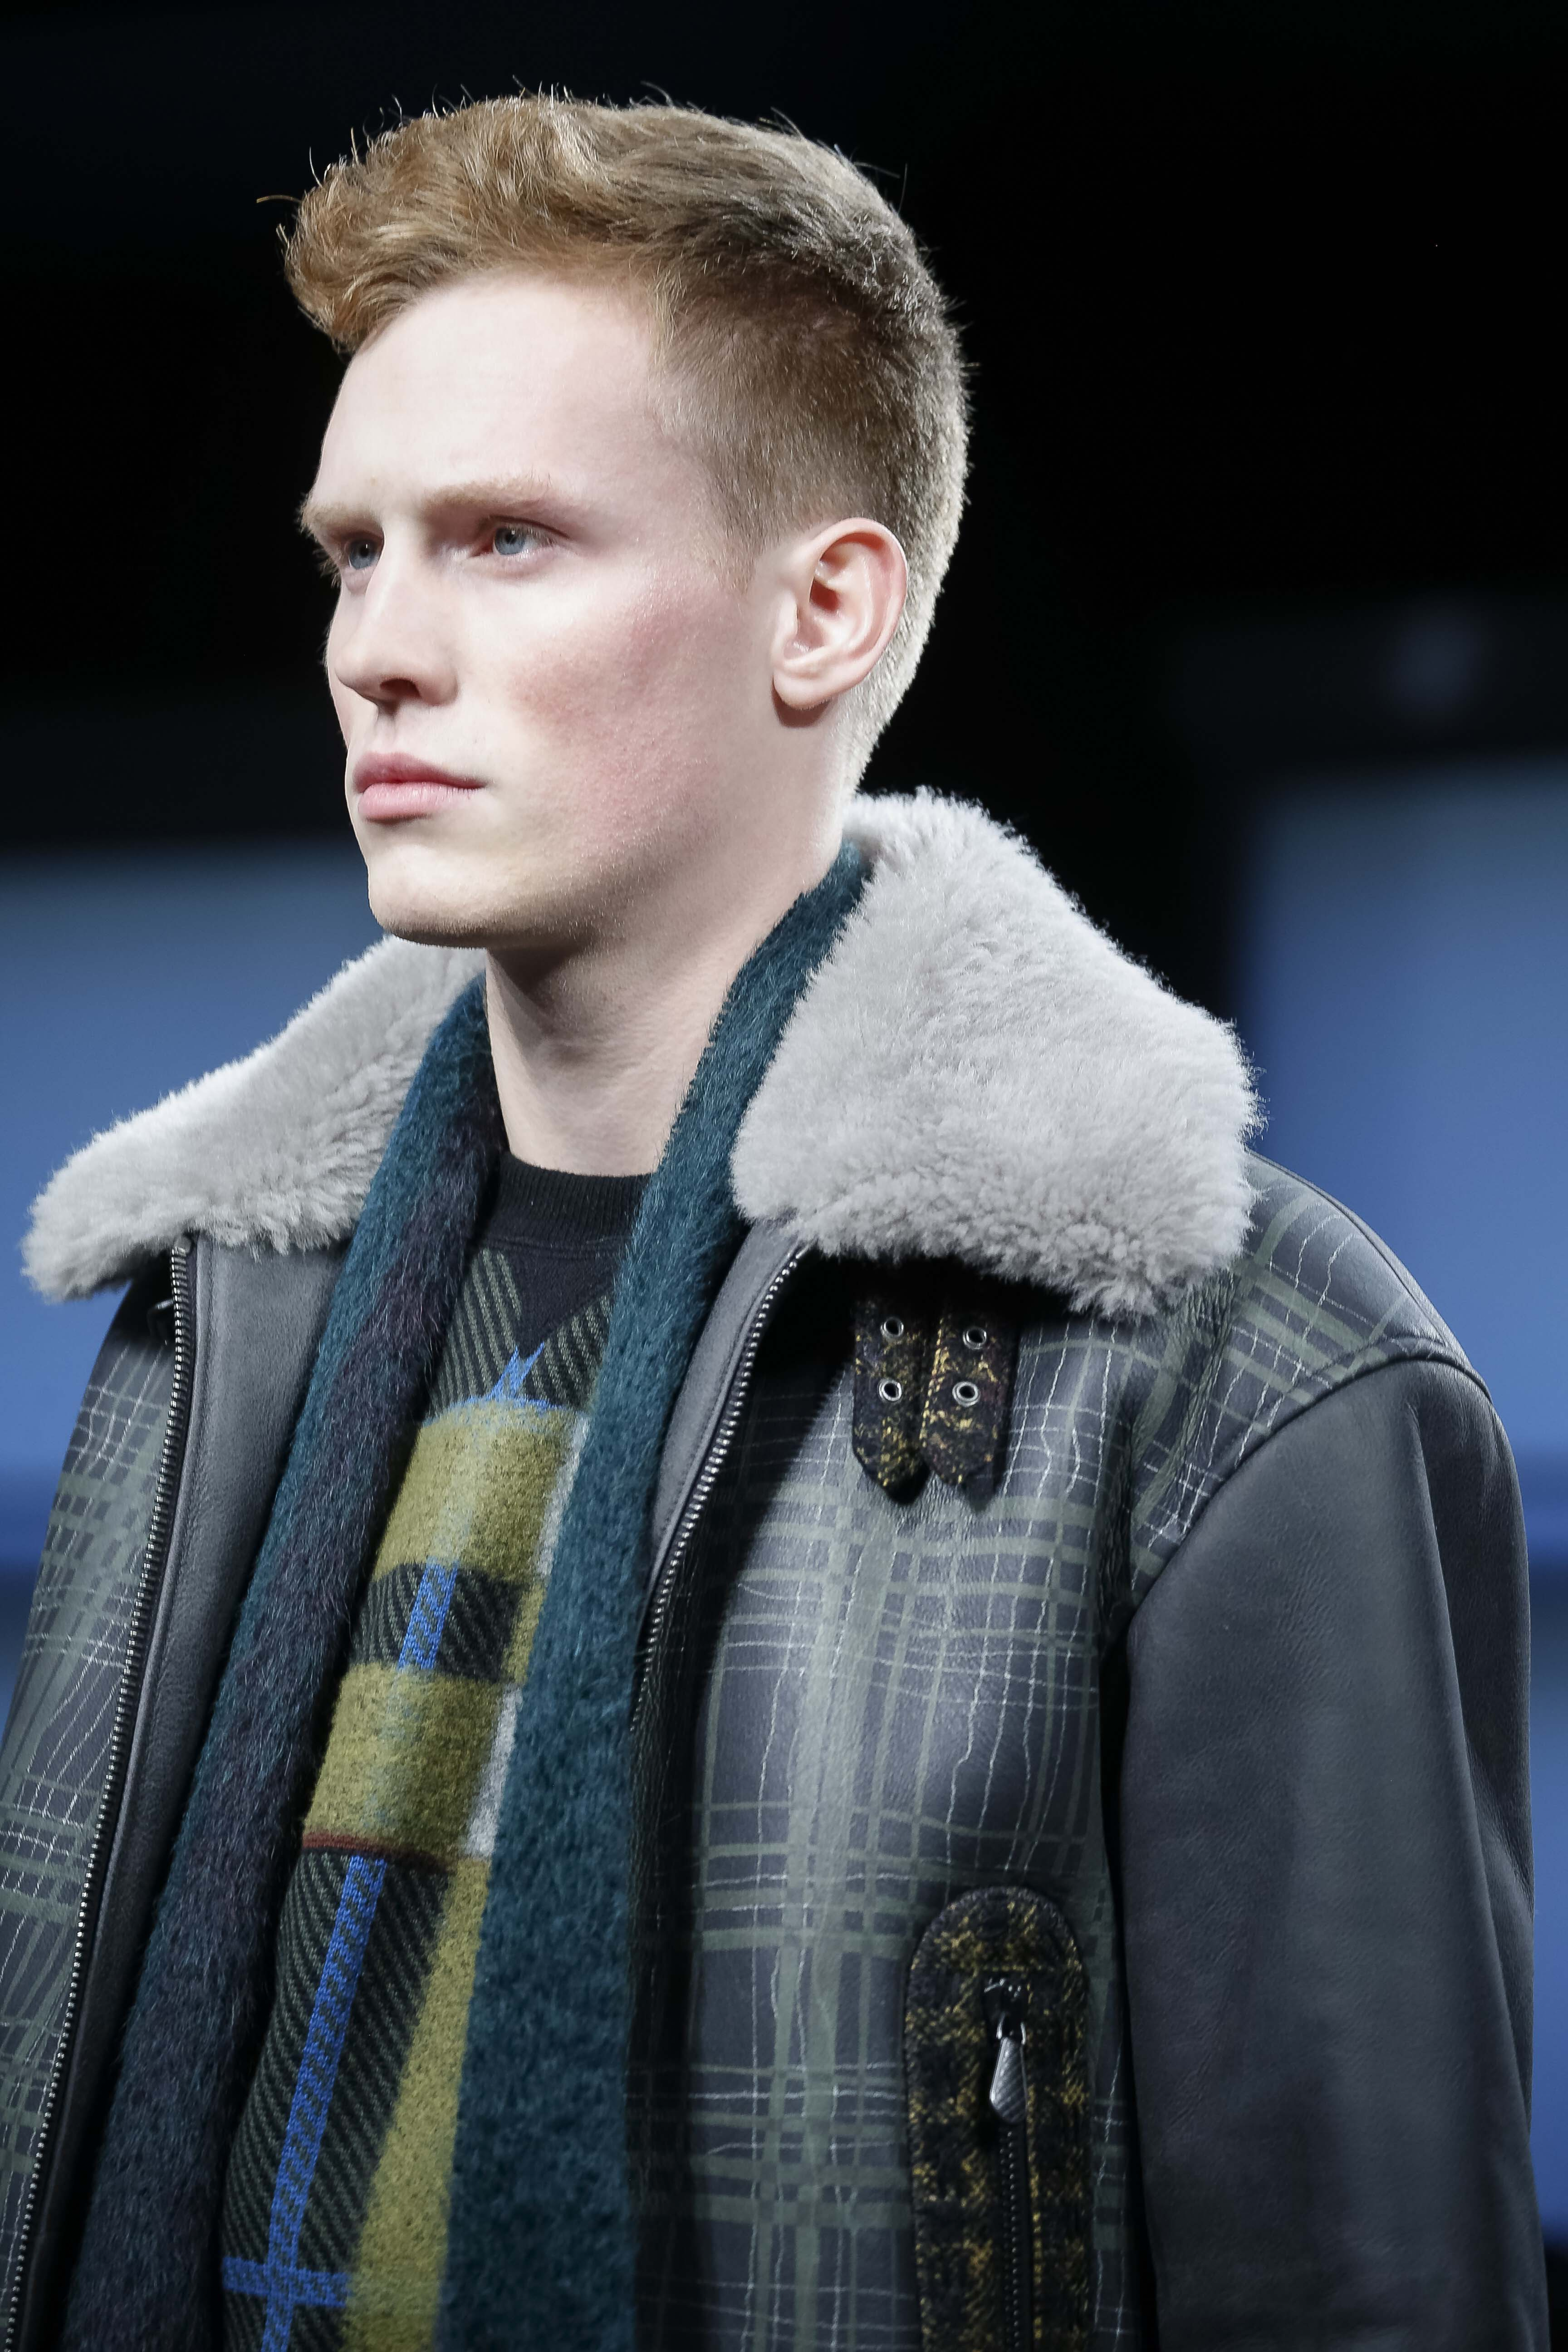 man with short blonde hair styled into a quiff hairstyle wearing a shearling coat on the runway